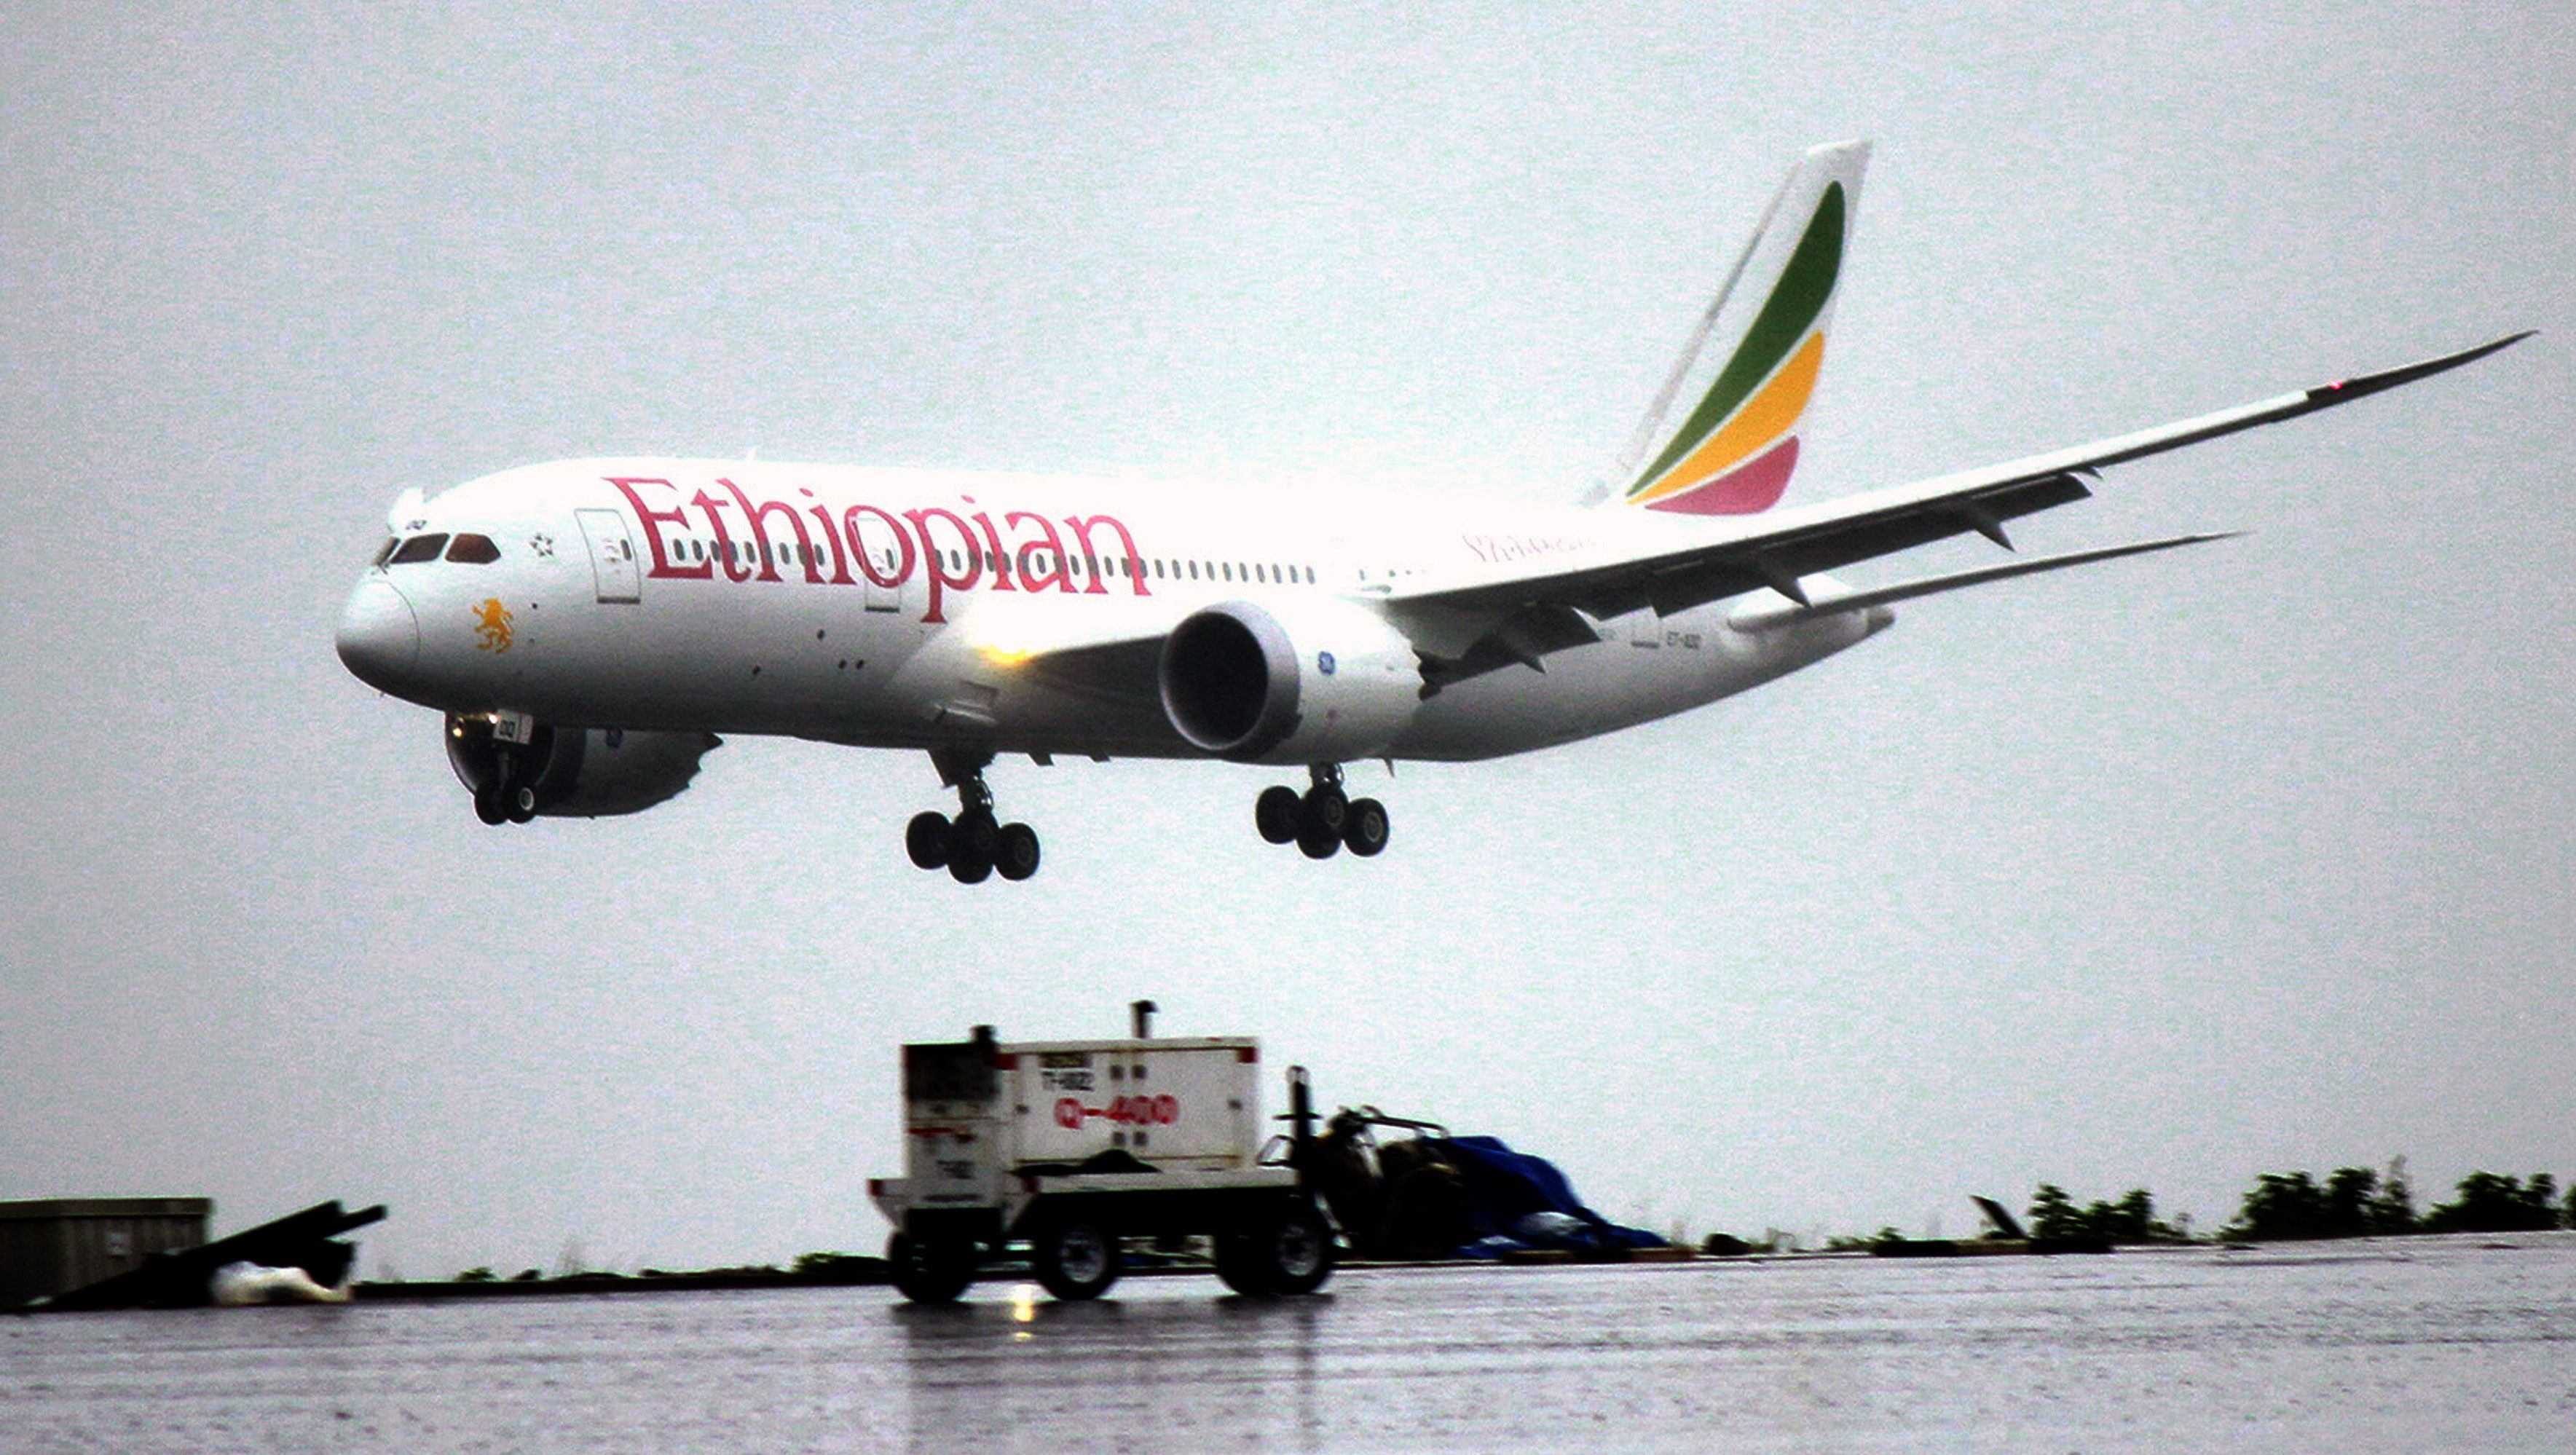 FILE - In this Friday, Aug.17, 2012 file photo, an Ethiopian Airlines Dreamliner Boeing 787 lands at Bole International airport in Addis Ababa, Ethiopia. A senior Ethiopian Airlines official said Thursday, Dec. 13, 2012 that a merger proposal made recently by the chief executive of Kenya Airways is not practical.